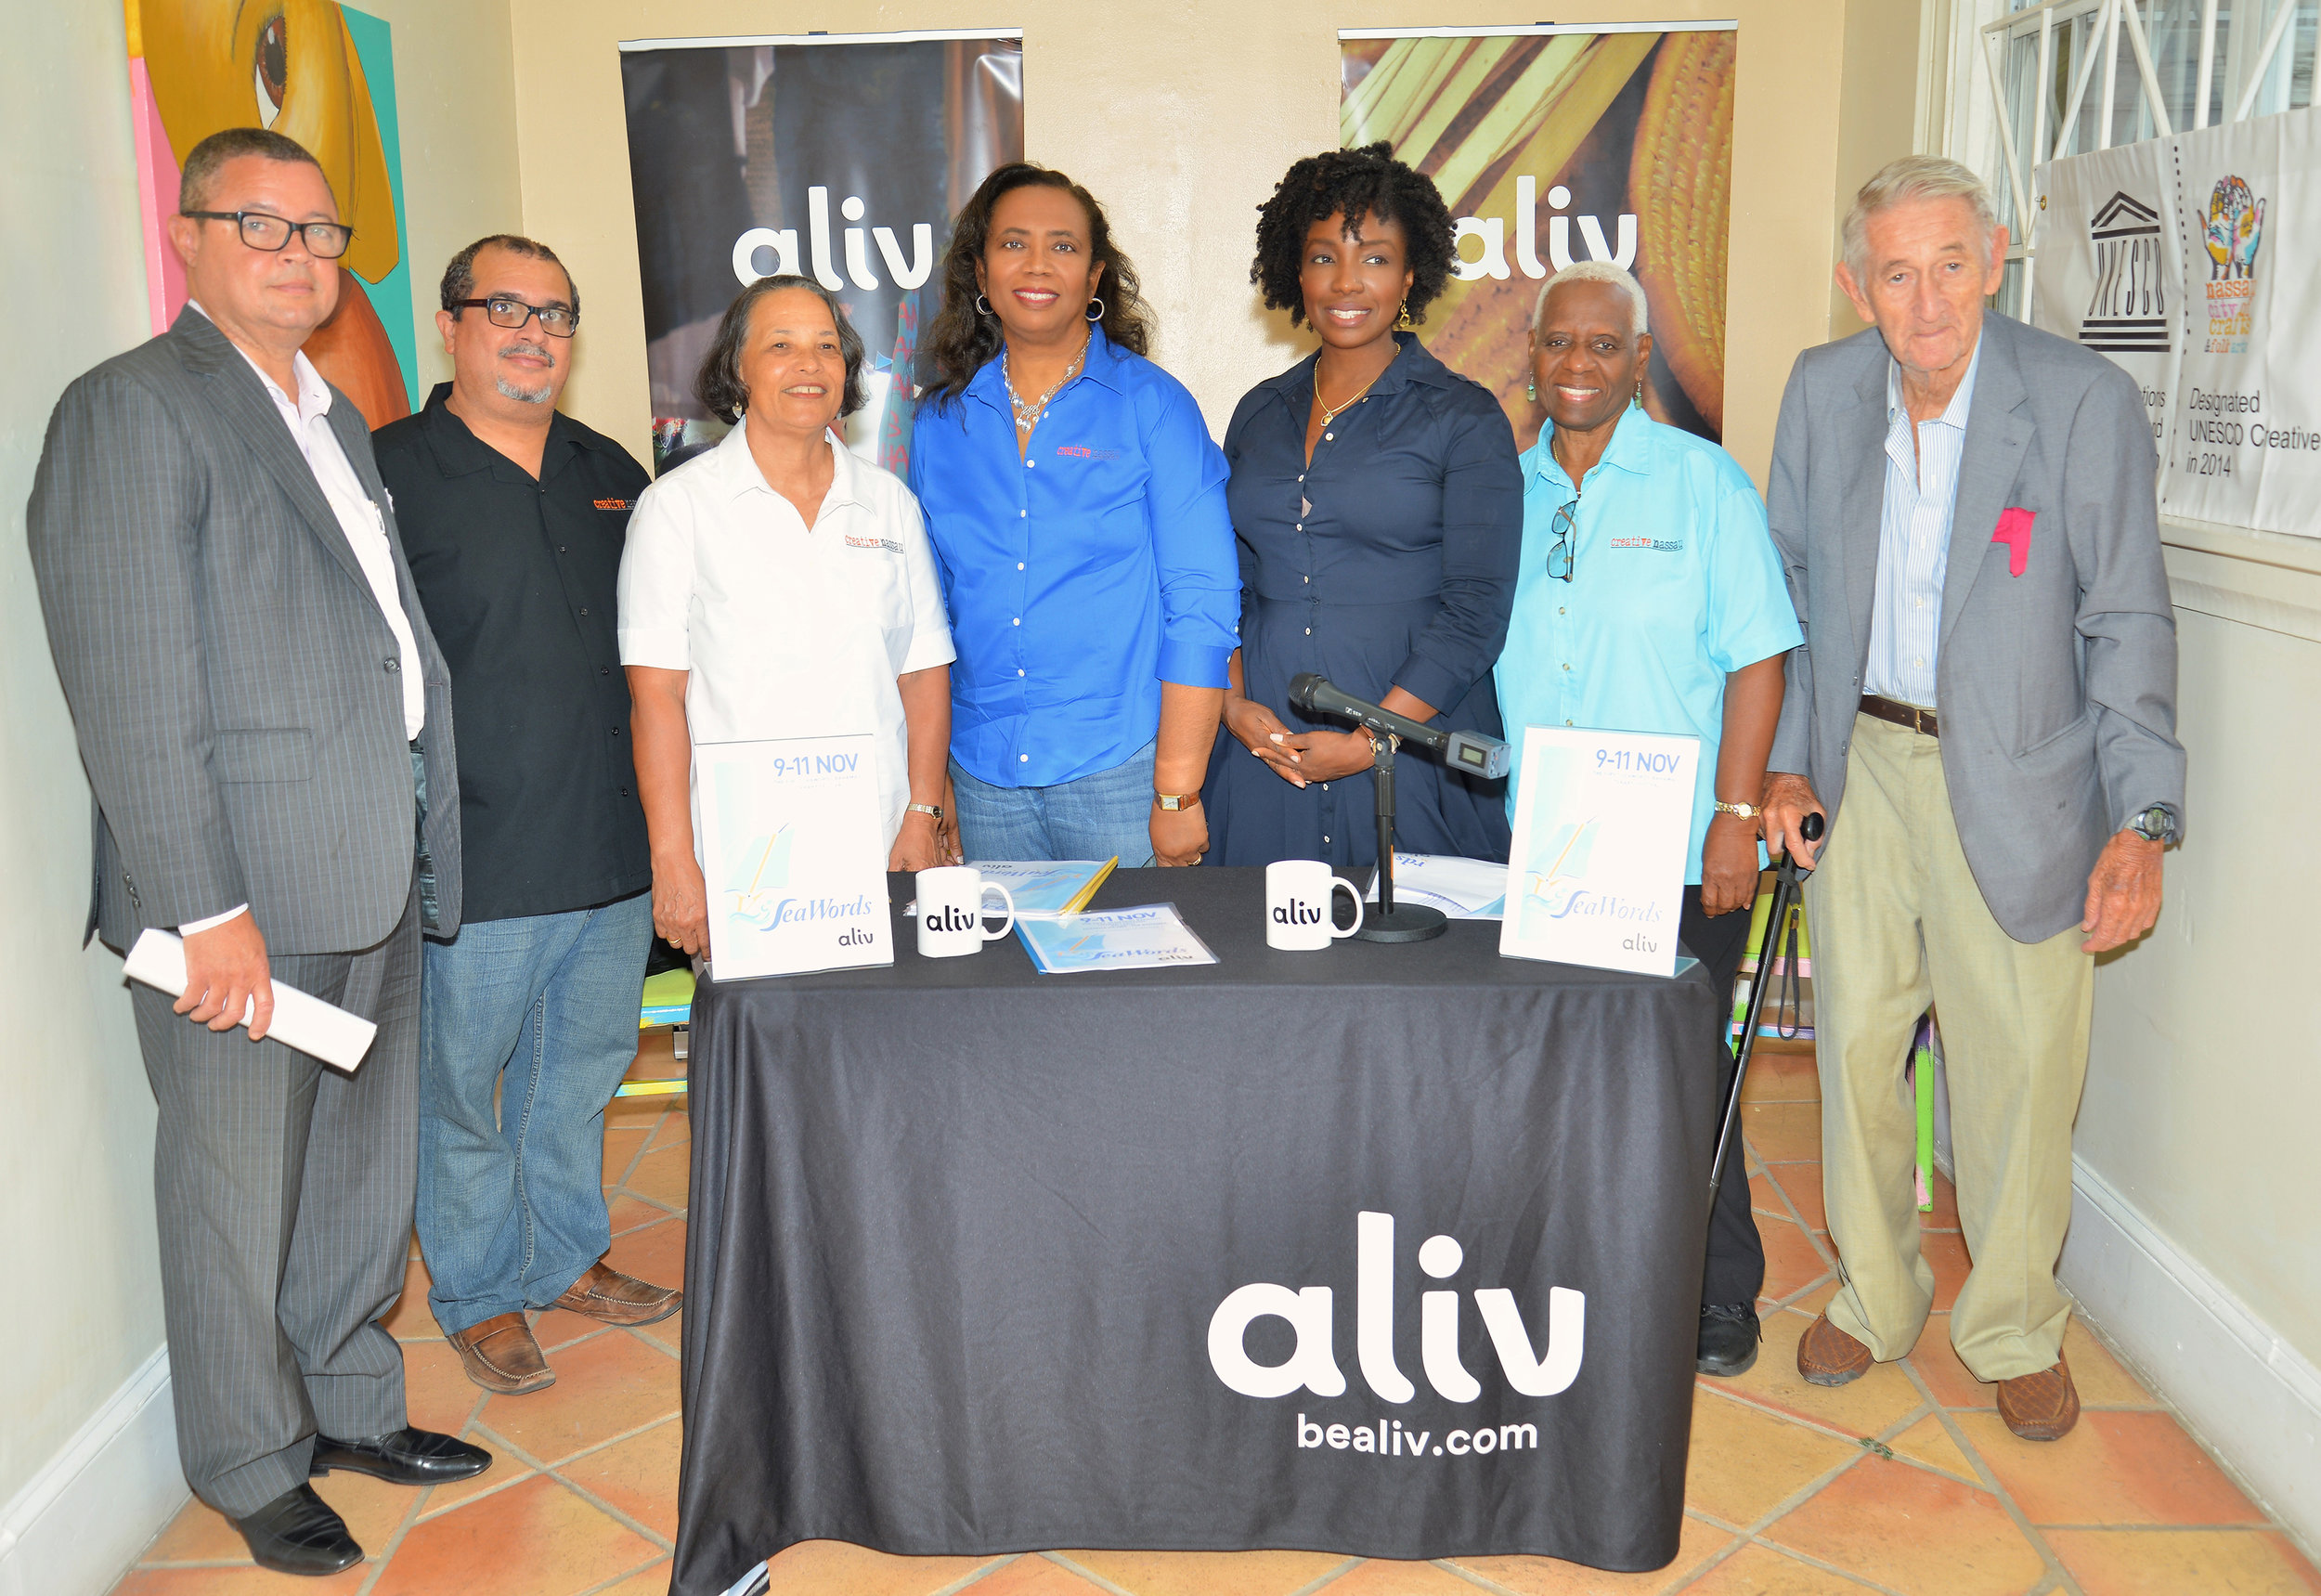 Members of the SeaWords Bahamas ALIV Committee and Sponsors at the June Press Launch - left to right: Paul McWeeney. Sponsor from Sunshine Group of Companies, Neko Meicholas, Pam Burnside, Patricia Glinton-Meicholas SeaWords Chair, Title Sponsor ALIV's Gravette Brown, Rosemary Hanna, and Richard Coulson